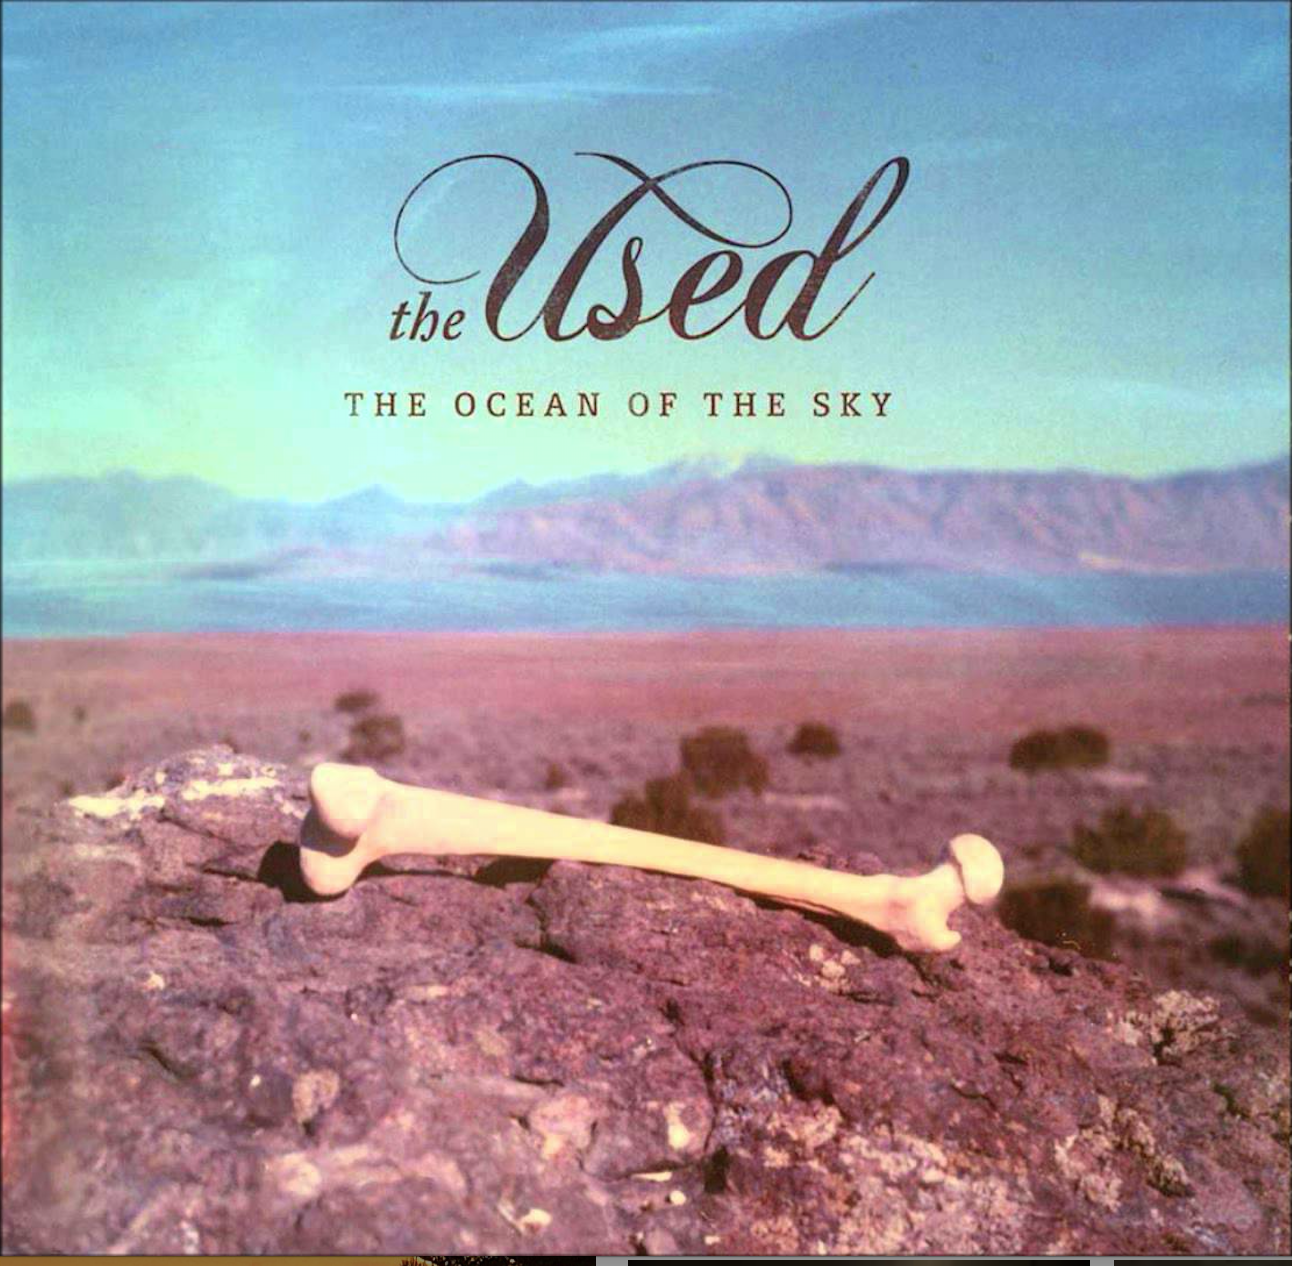 The Used Oceans in the sky